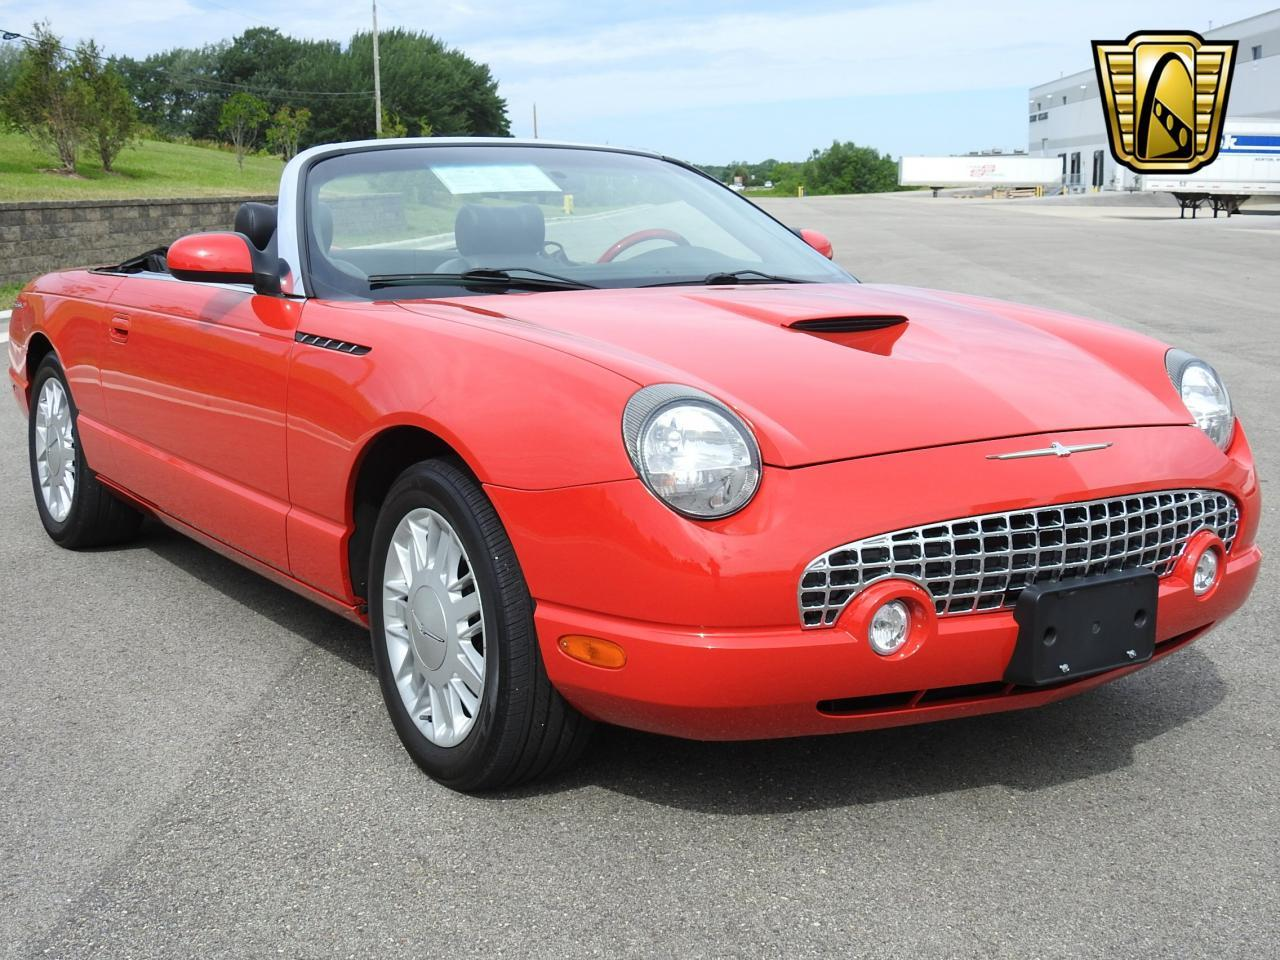 Large Picture of 2002 Ford Thunderbird located in Kenosha Wisconsin - $19,995.00 - LBSH